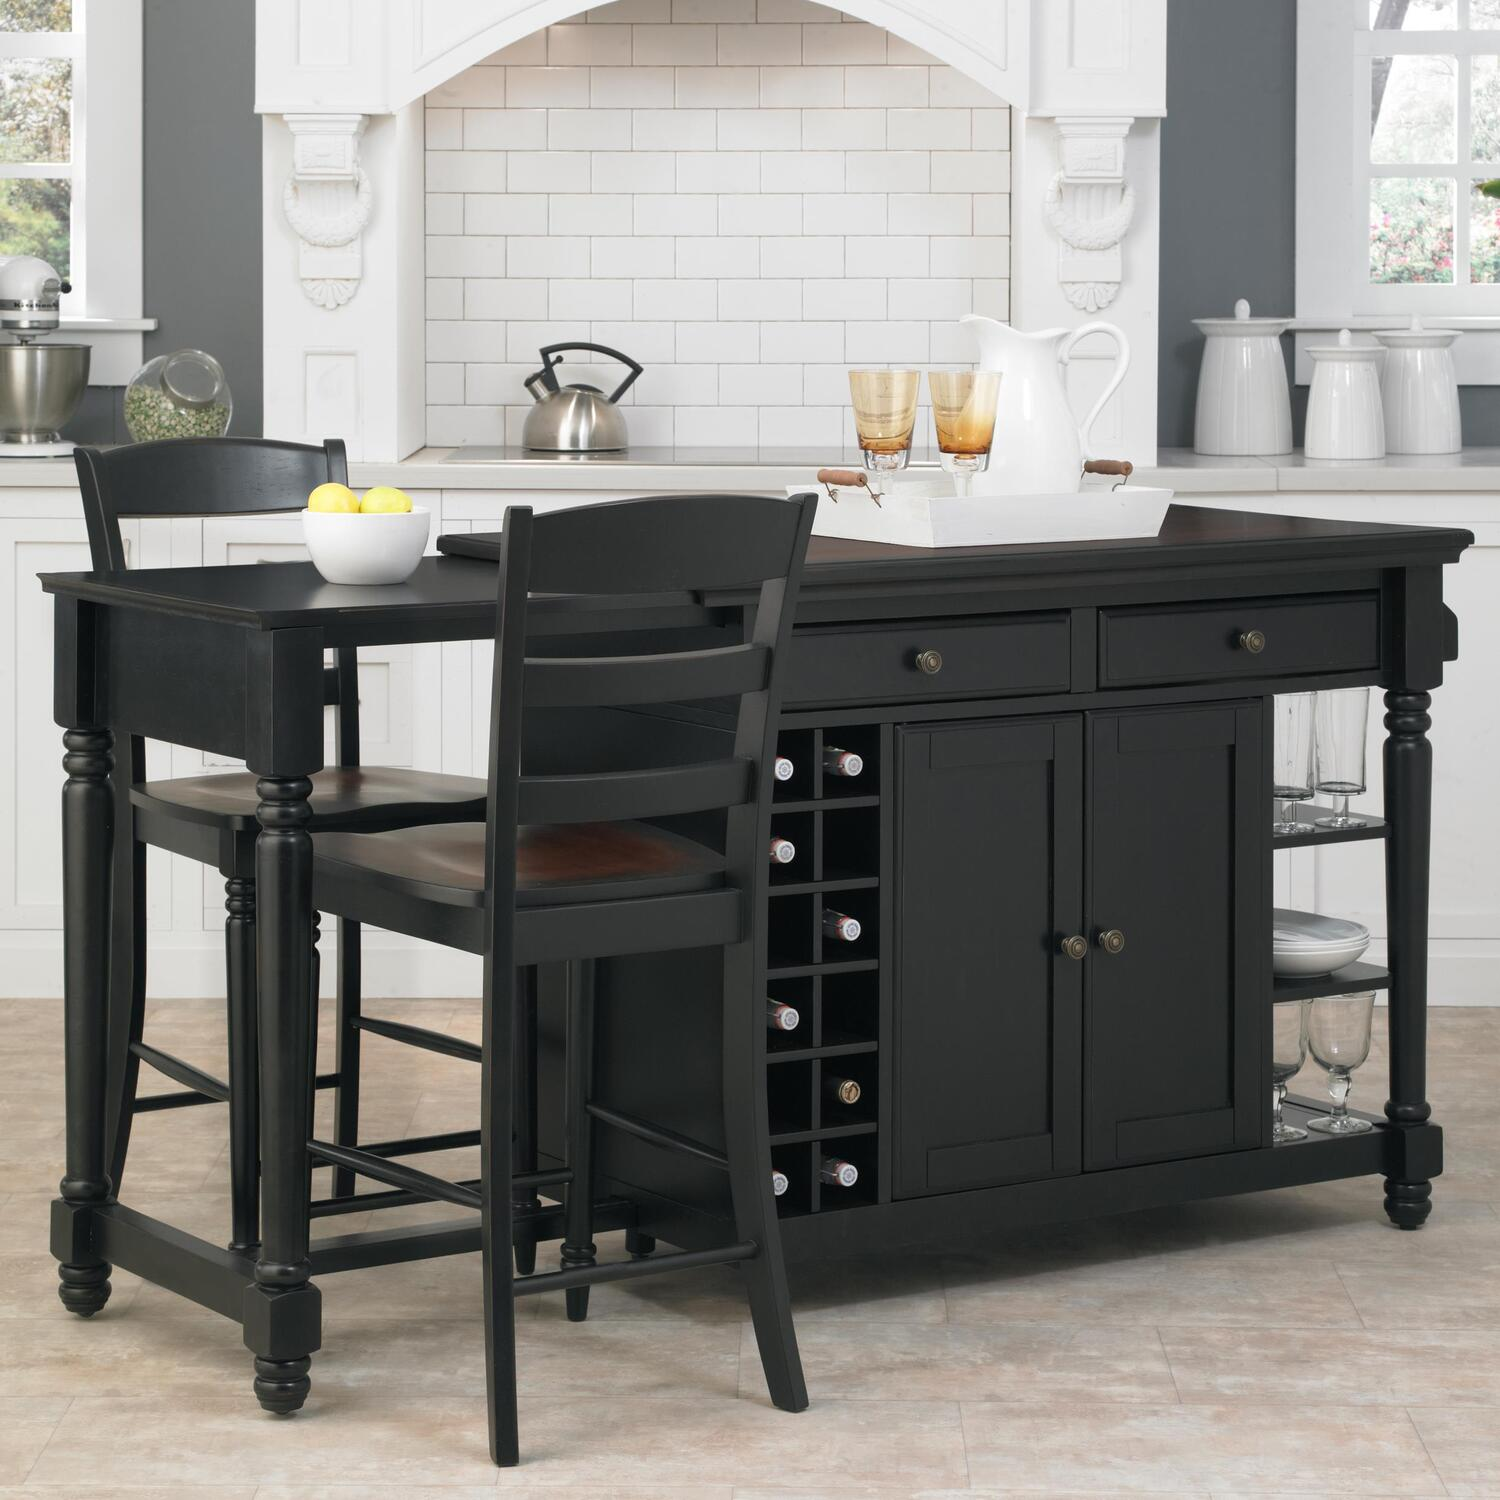 Kitchen Island Furniture: Furniture, Home Goods, Appliances, Athletic Gear, Fitness